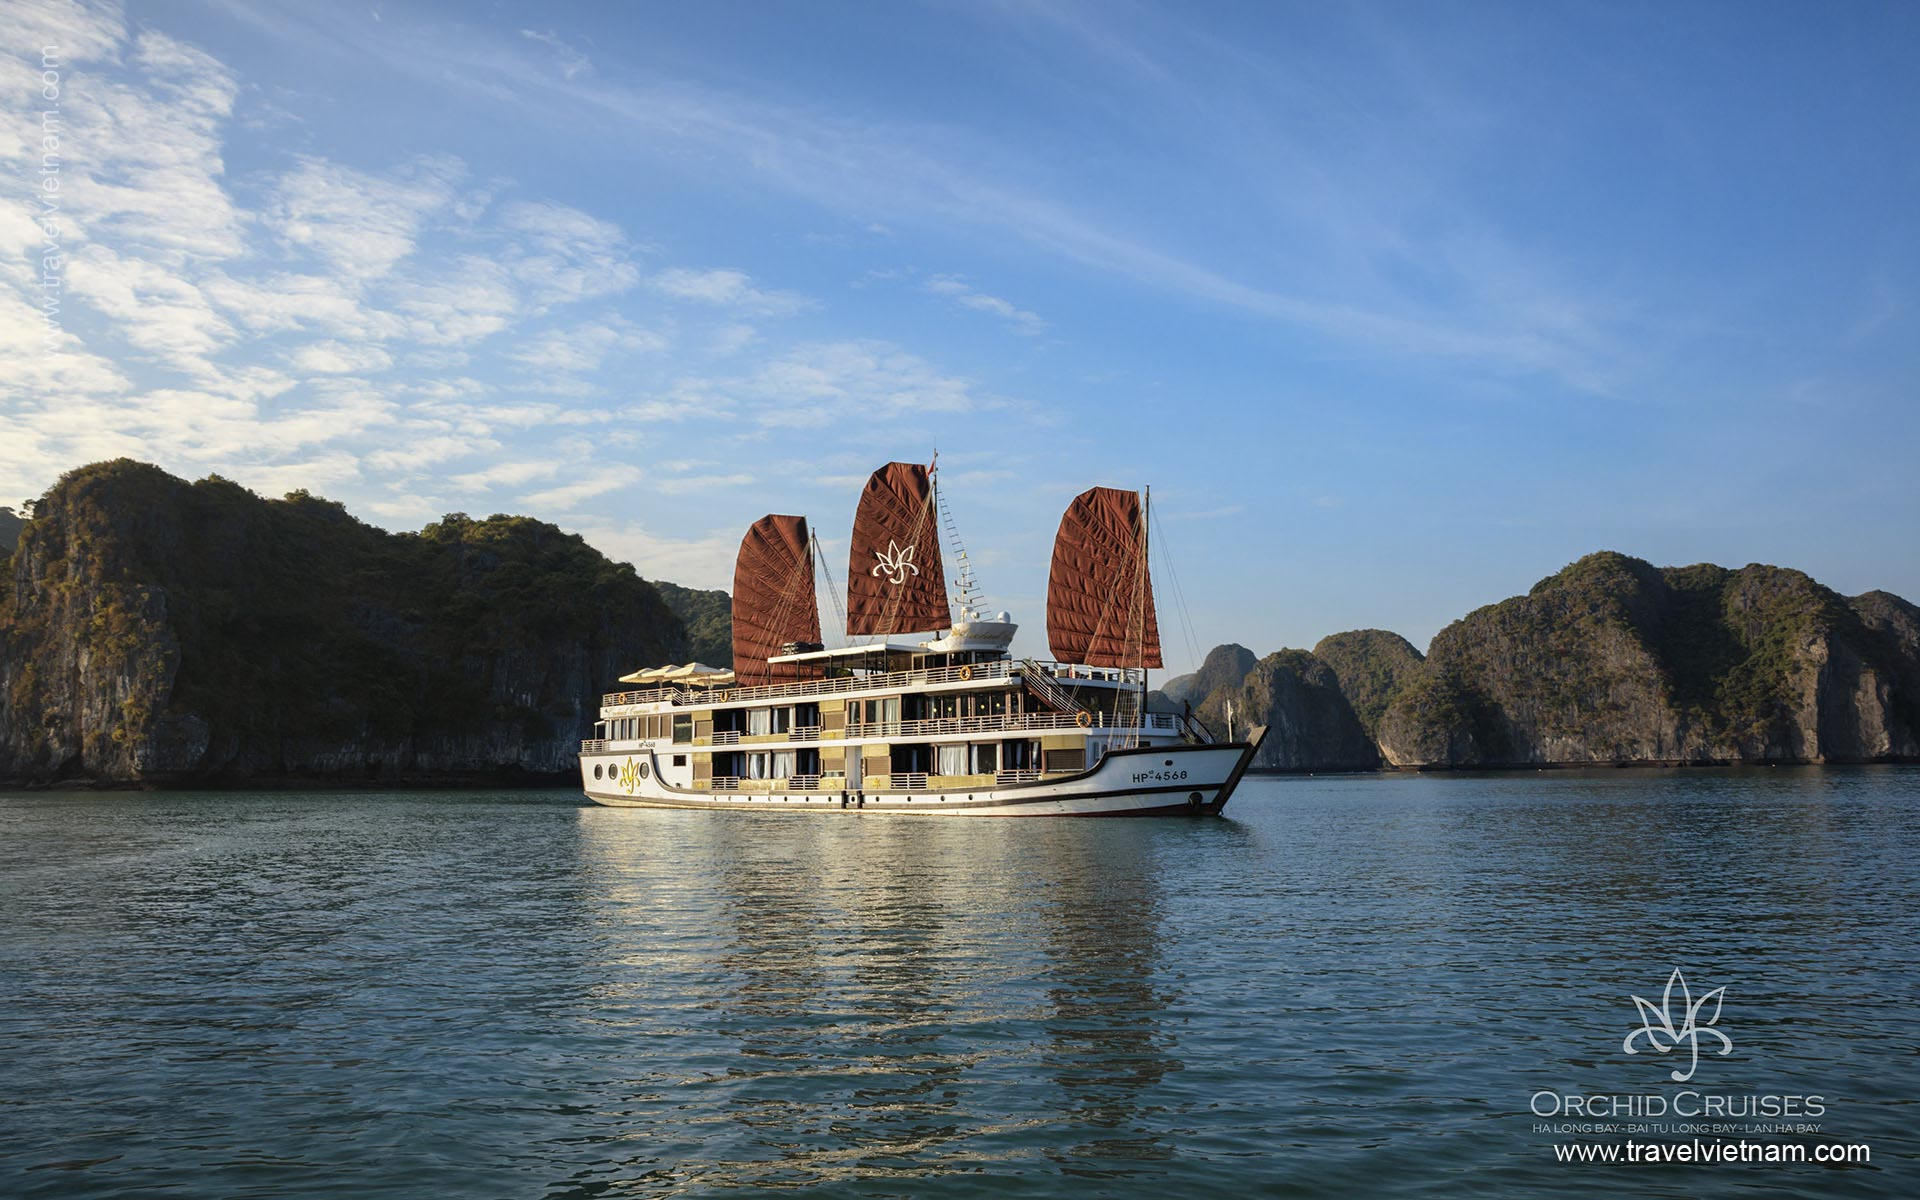 Orchid Cruises